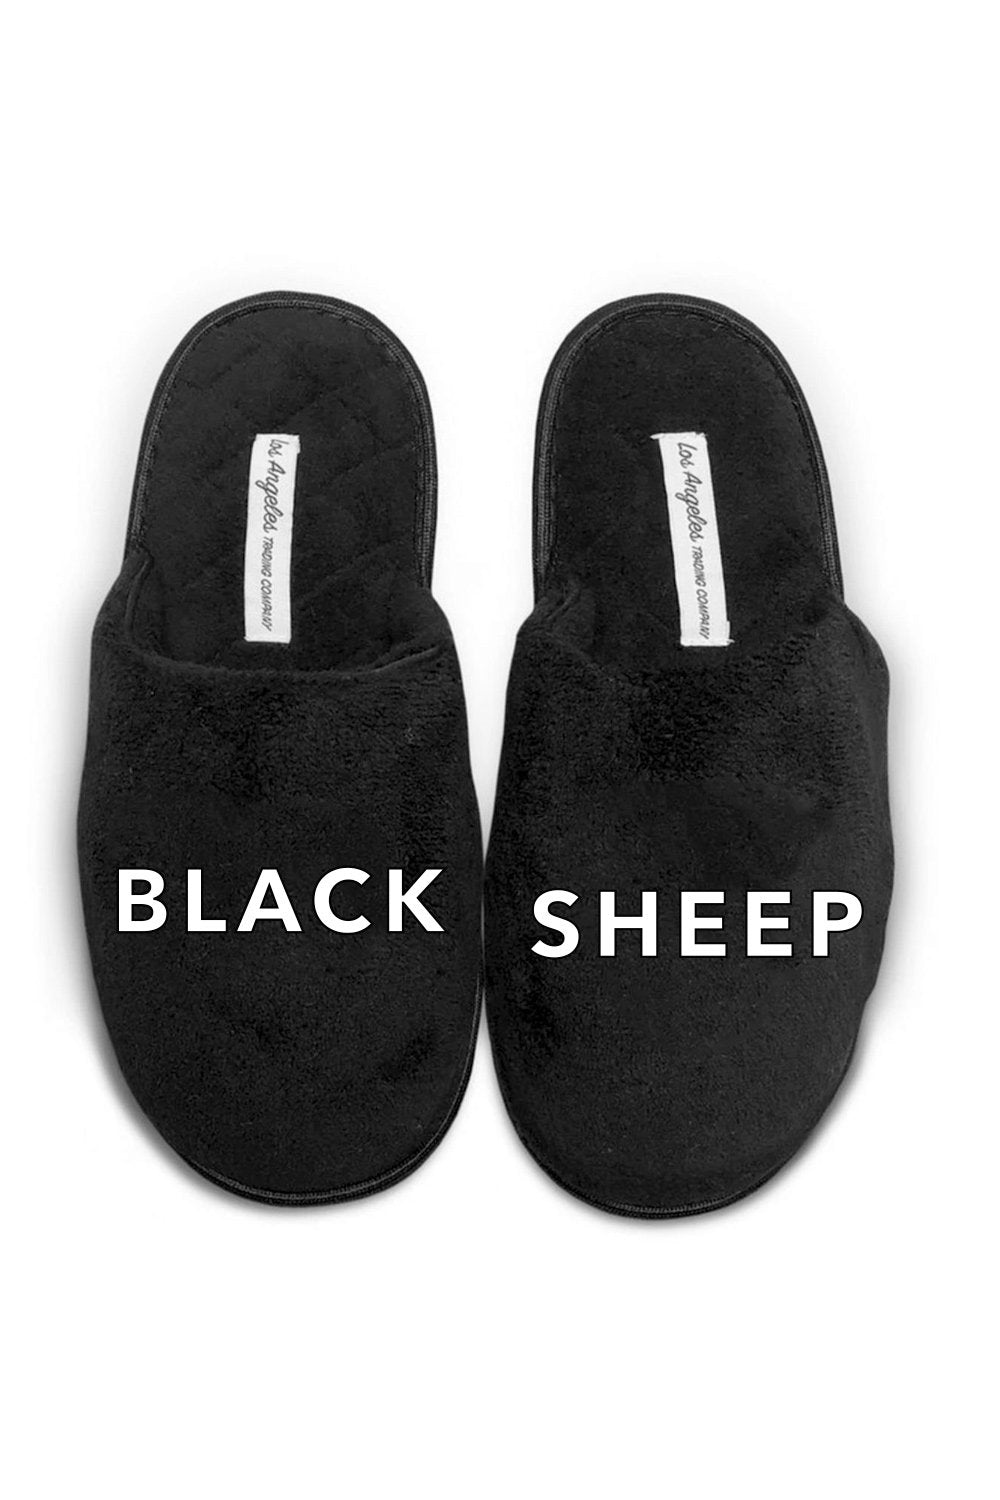 Black Sheep Slippers